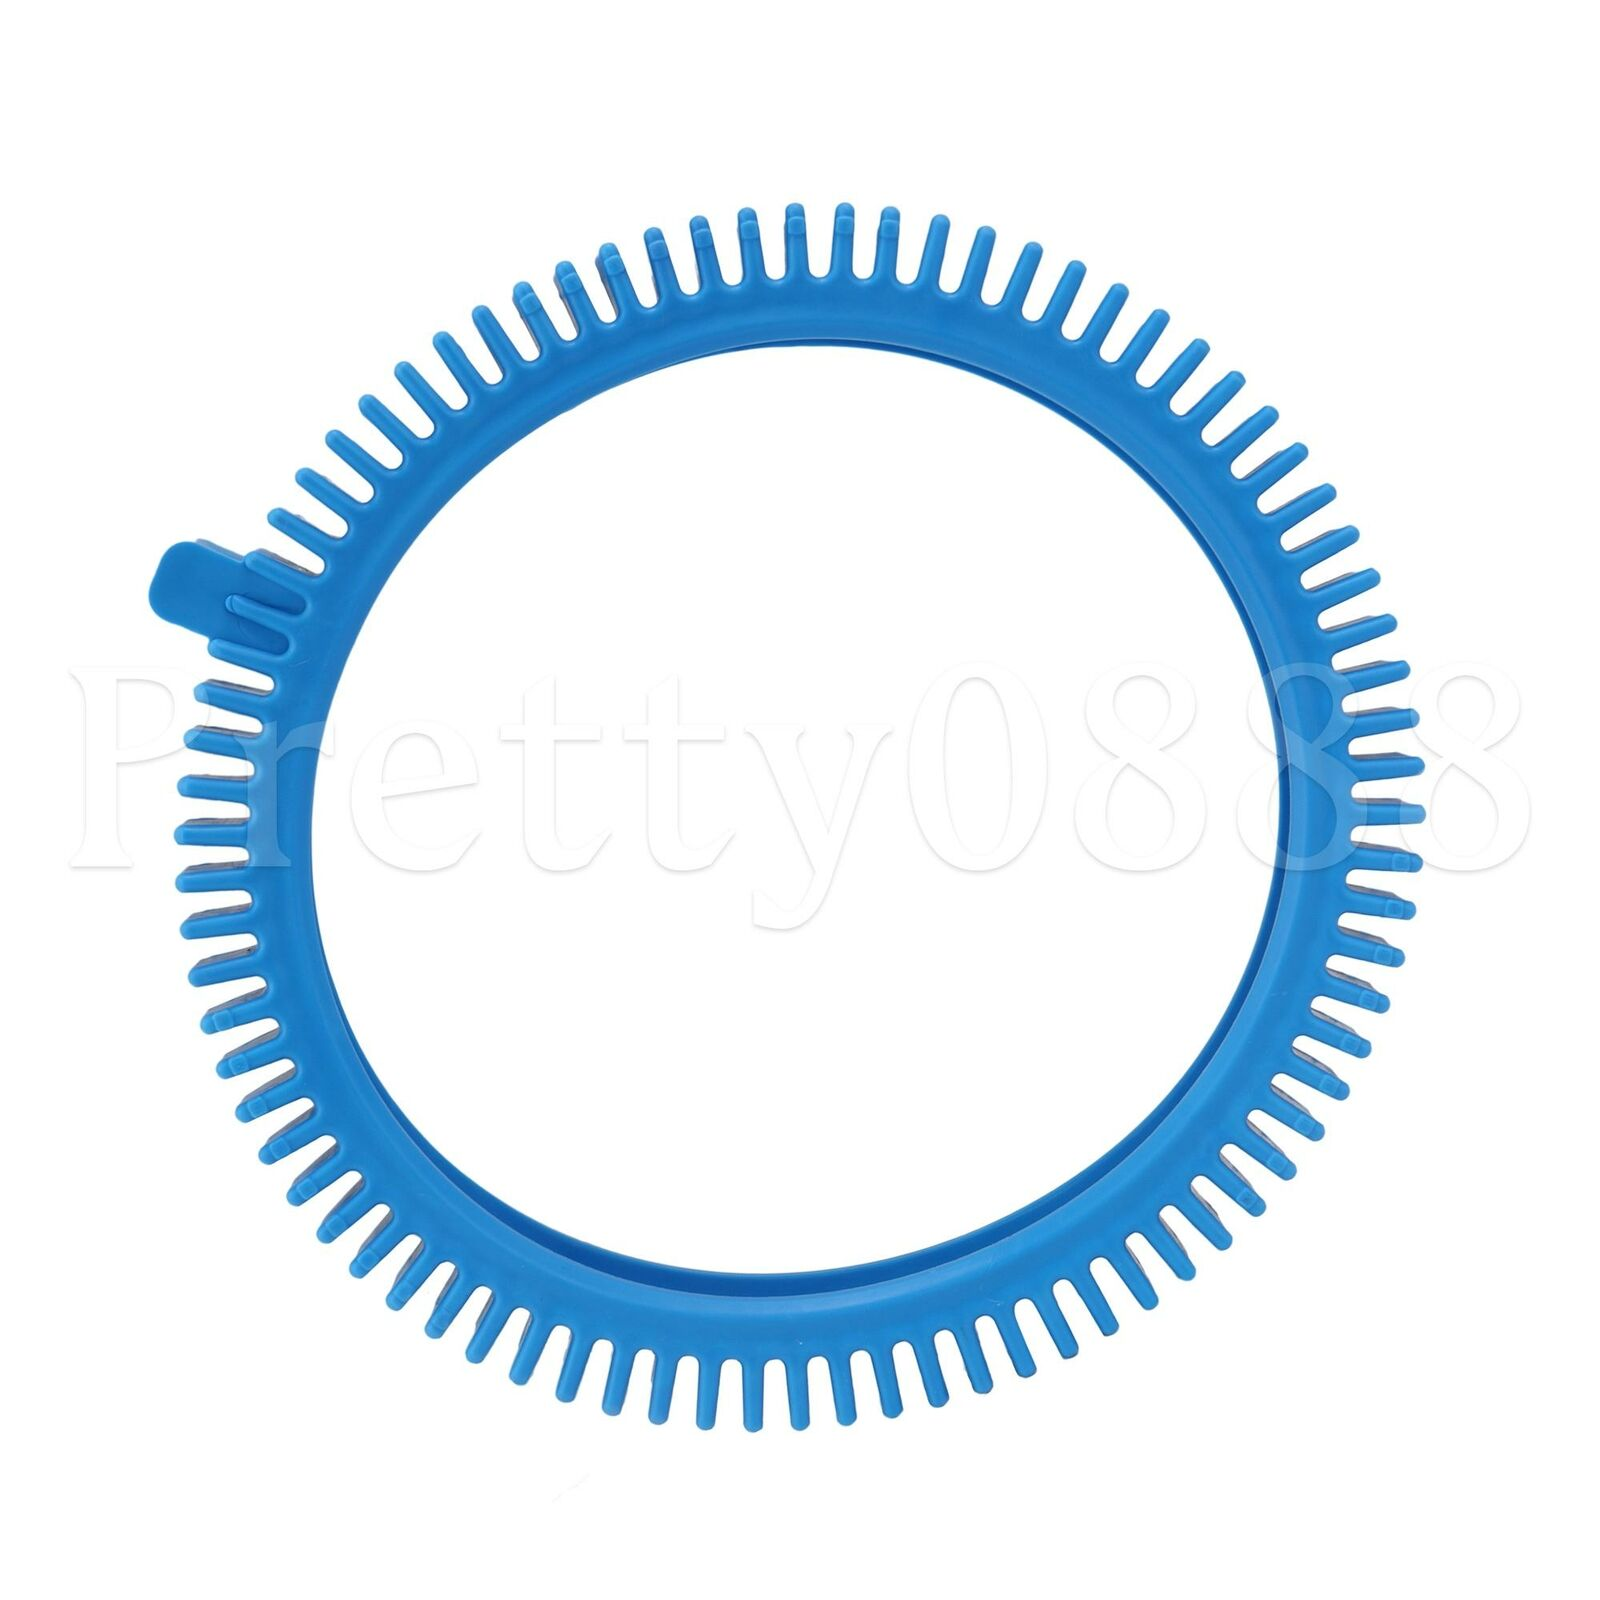 2 x Swimming Pool Front Tires 896584000-143 Replacement for Hayward 2X